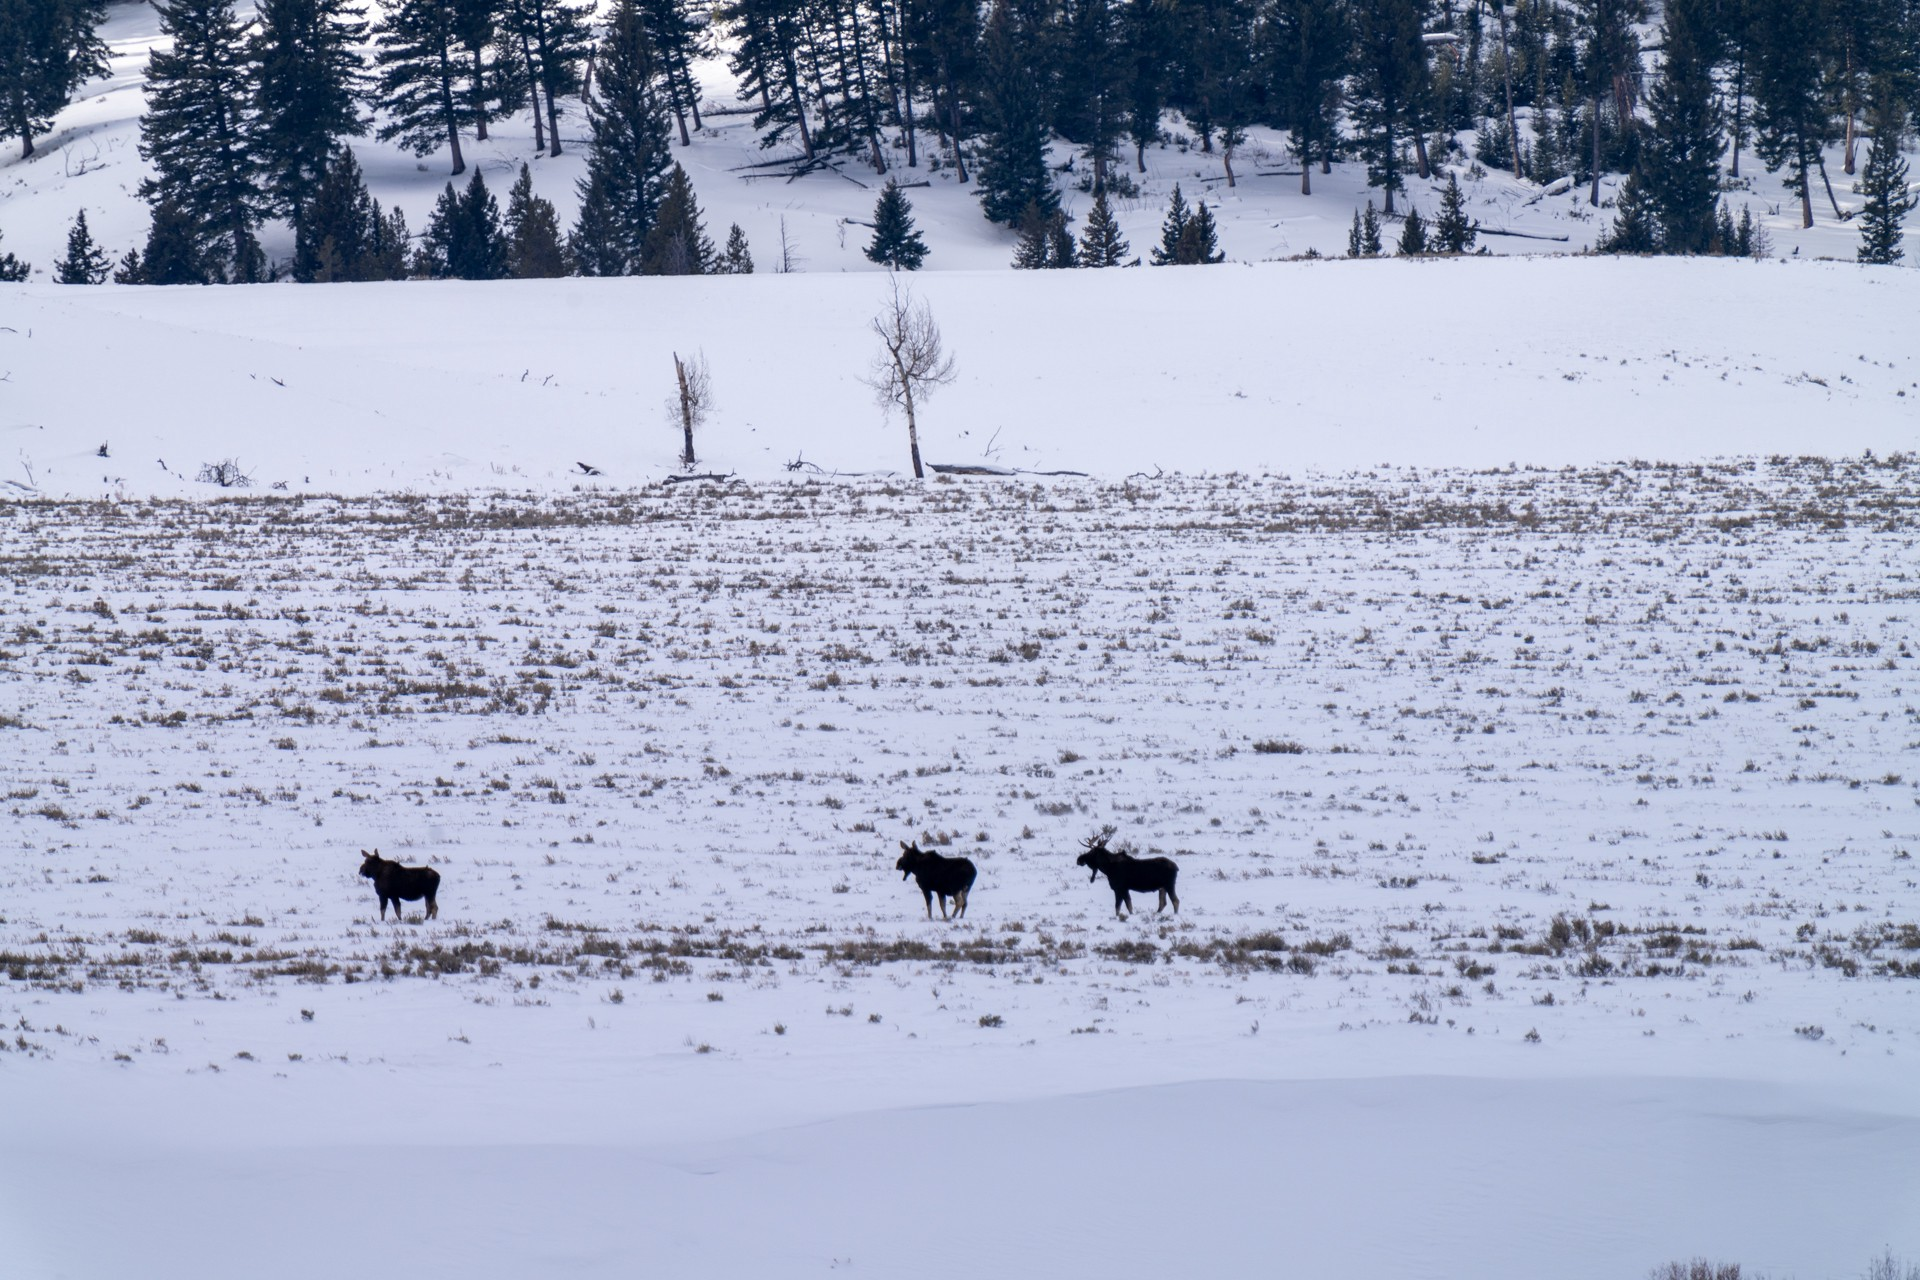 Three adult moose are traversing the vast, empty snow-covered fields. Conifer-lined mountains lie in the background.